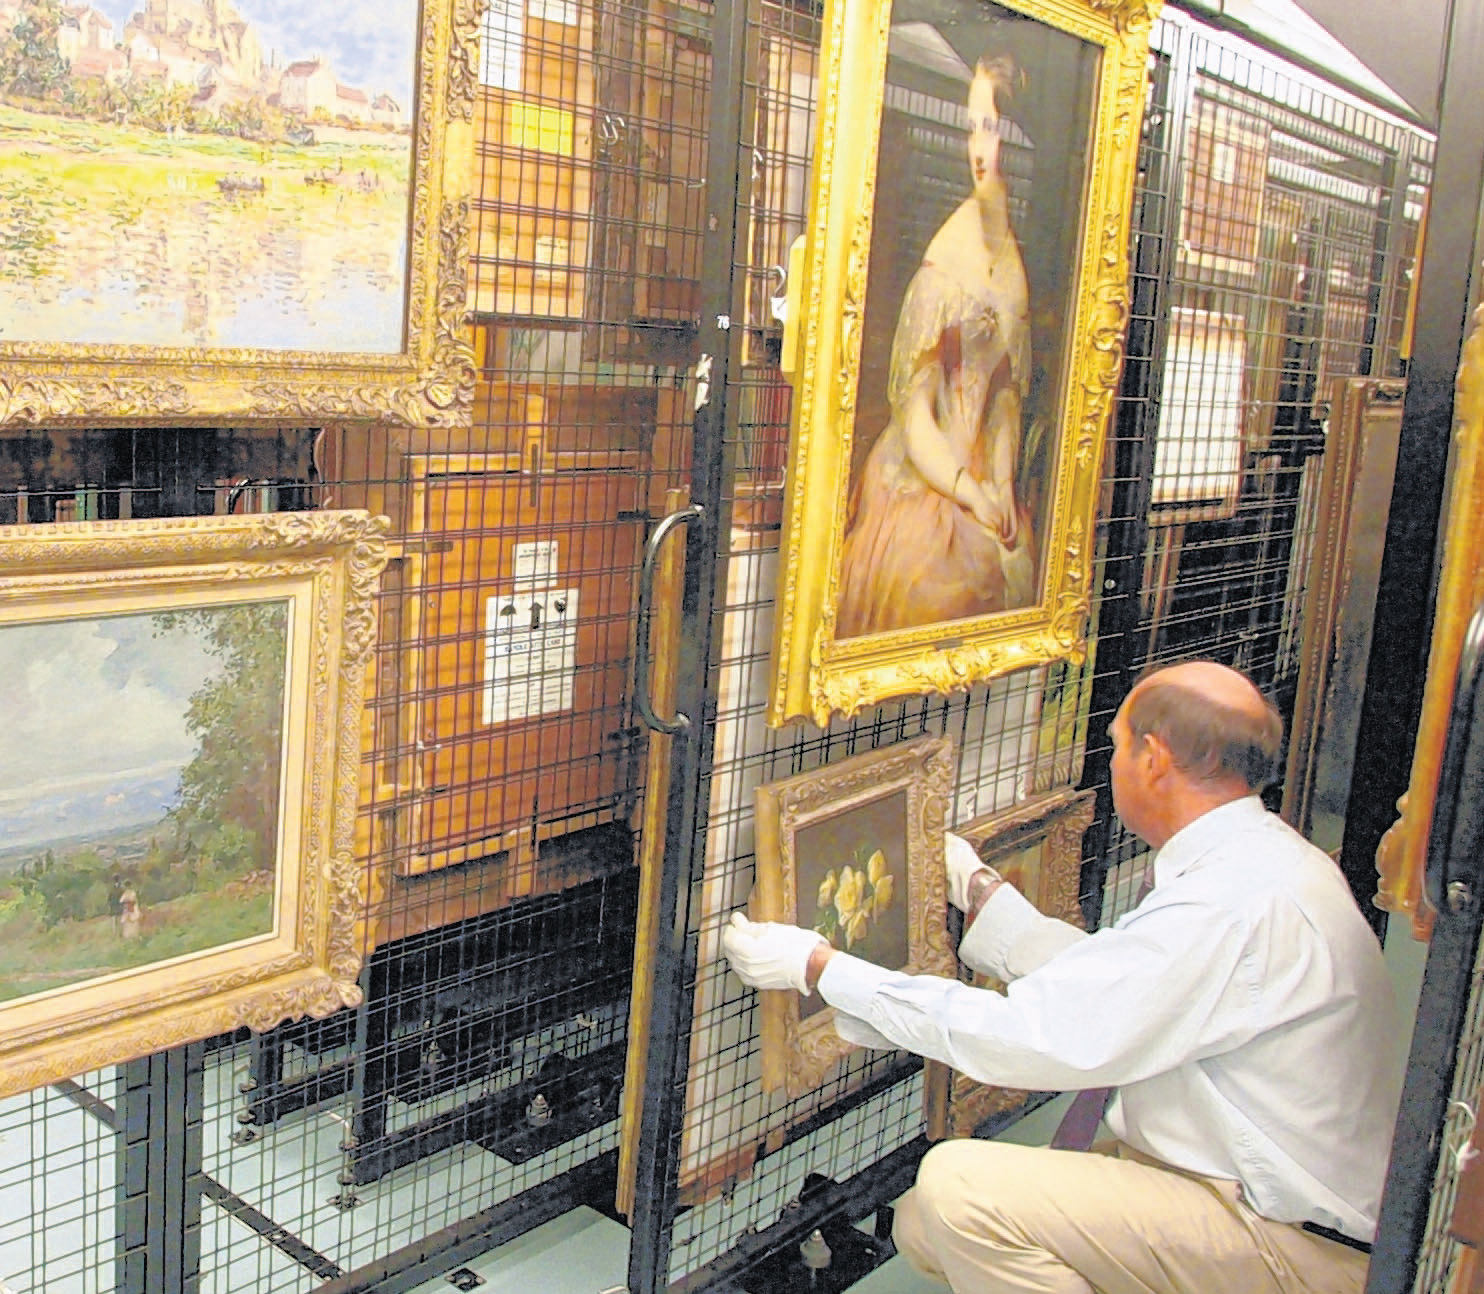 City begins to sell off art works